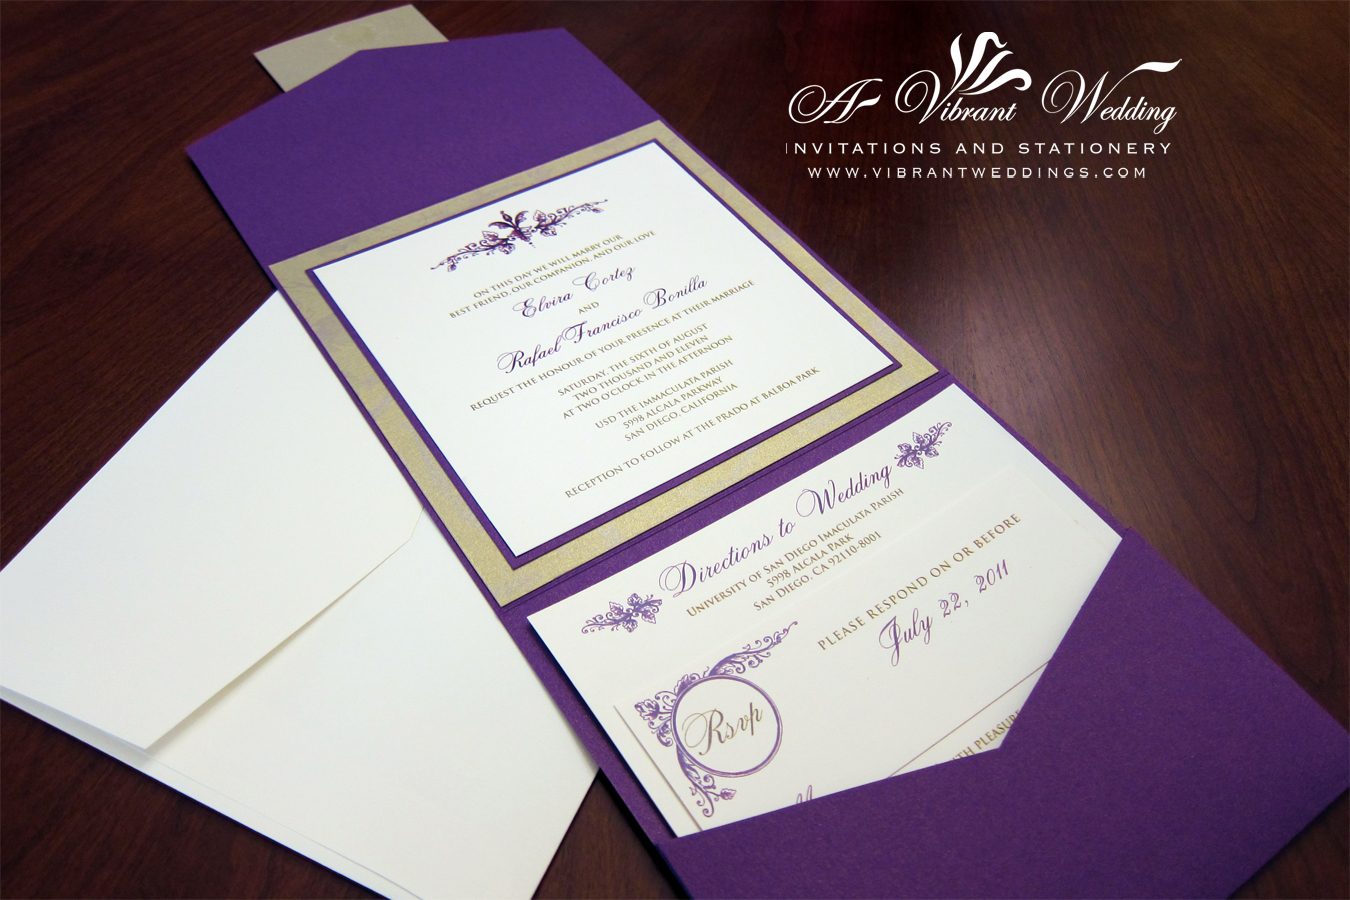 Cheap Wedding Invitations: Cheap Wedding Invitations - How to Save ...